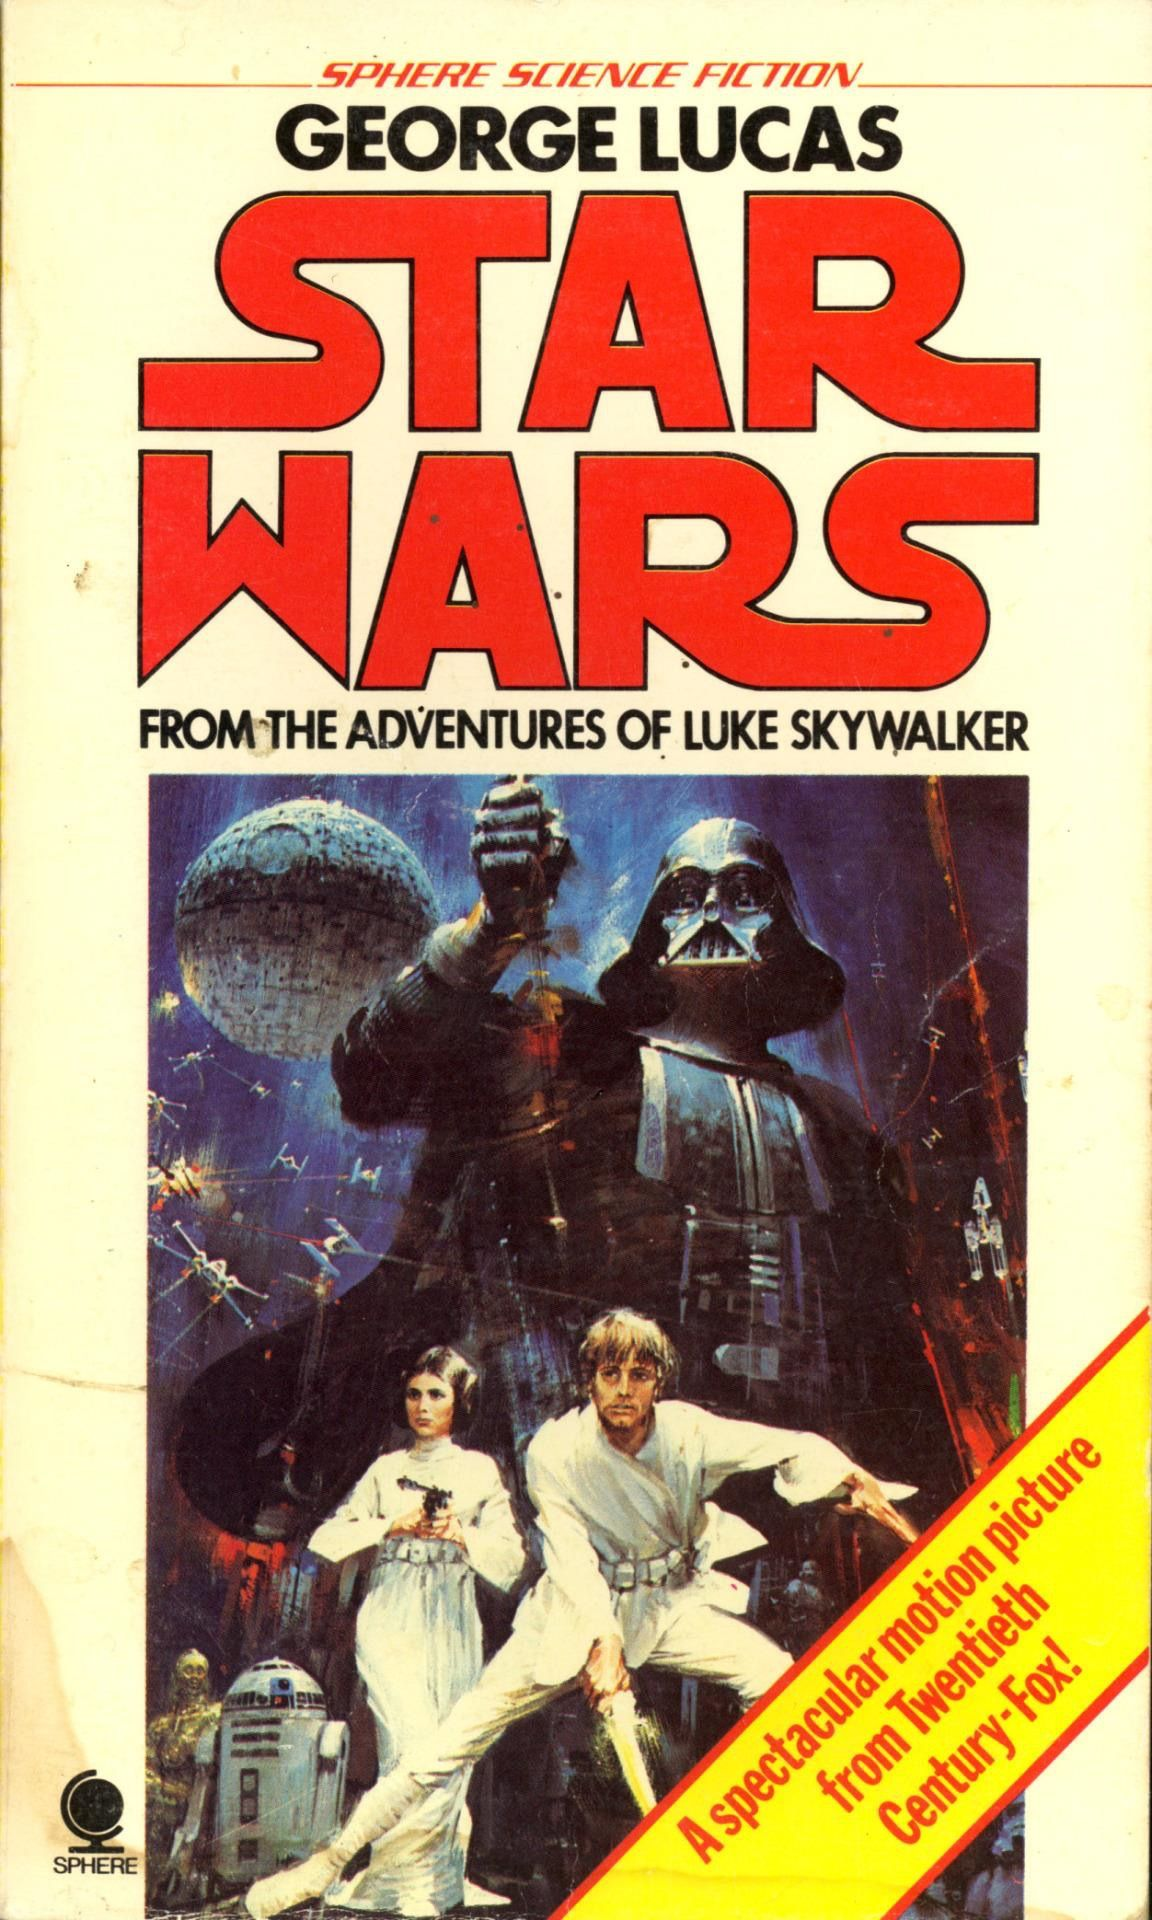 Star Wars Star Wars Star Wars Books Star Wars Luke Skywalker